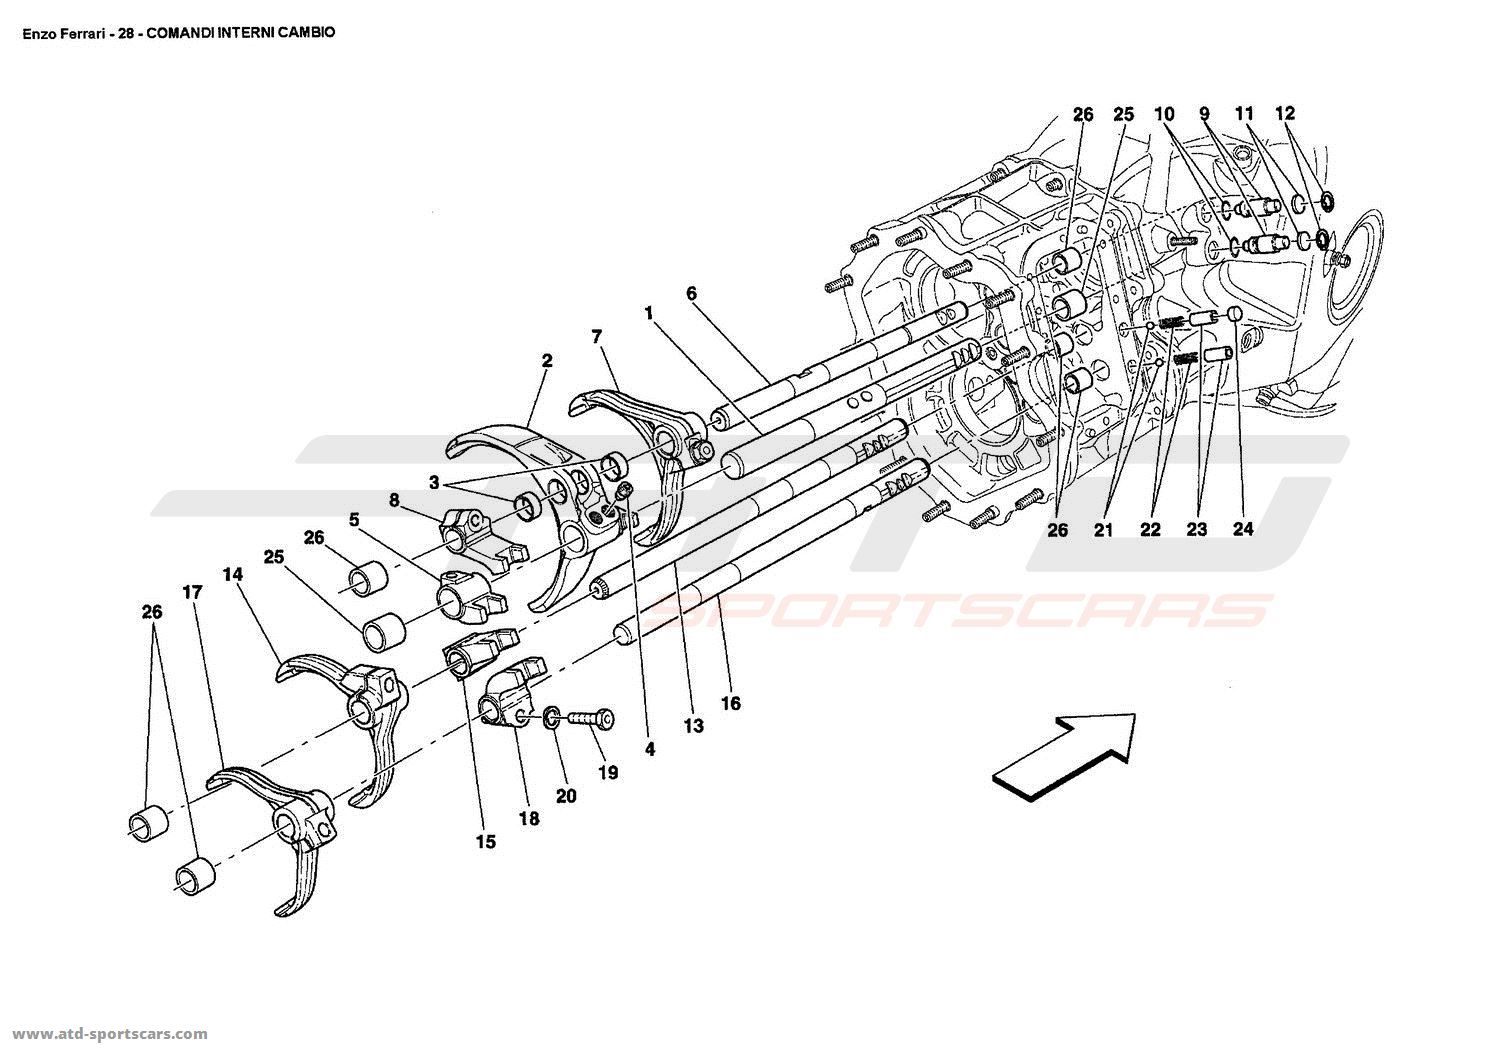 Buick Reatta Fuse Box Diagram 29 Wiring Images On Enclave Ferrari Enzo Inside Gearbox Controls 1990